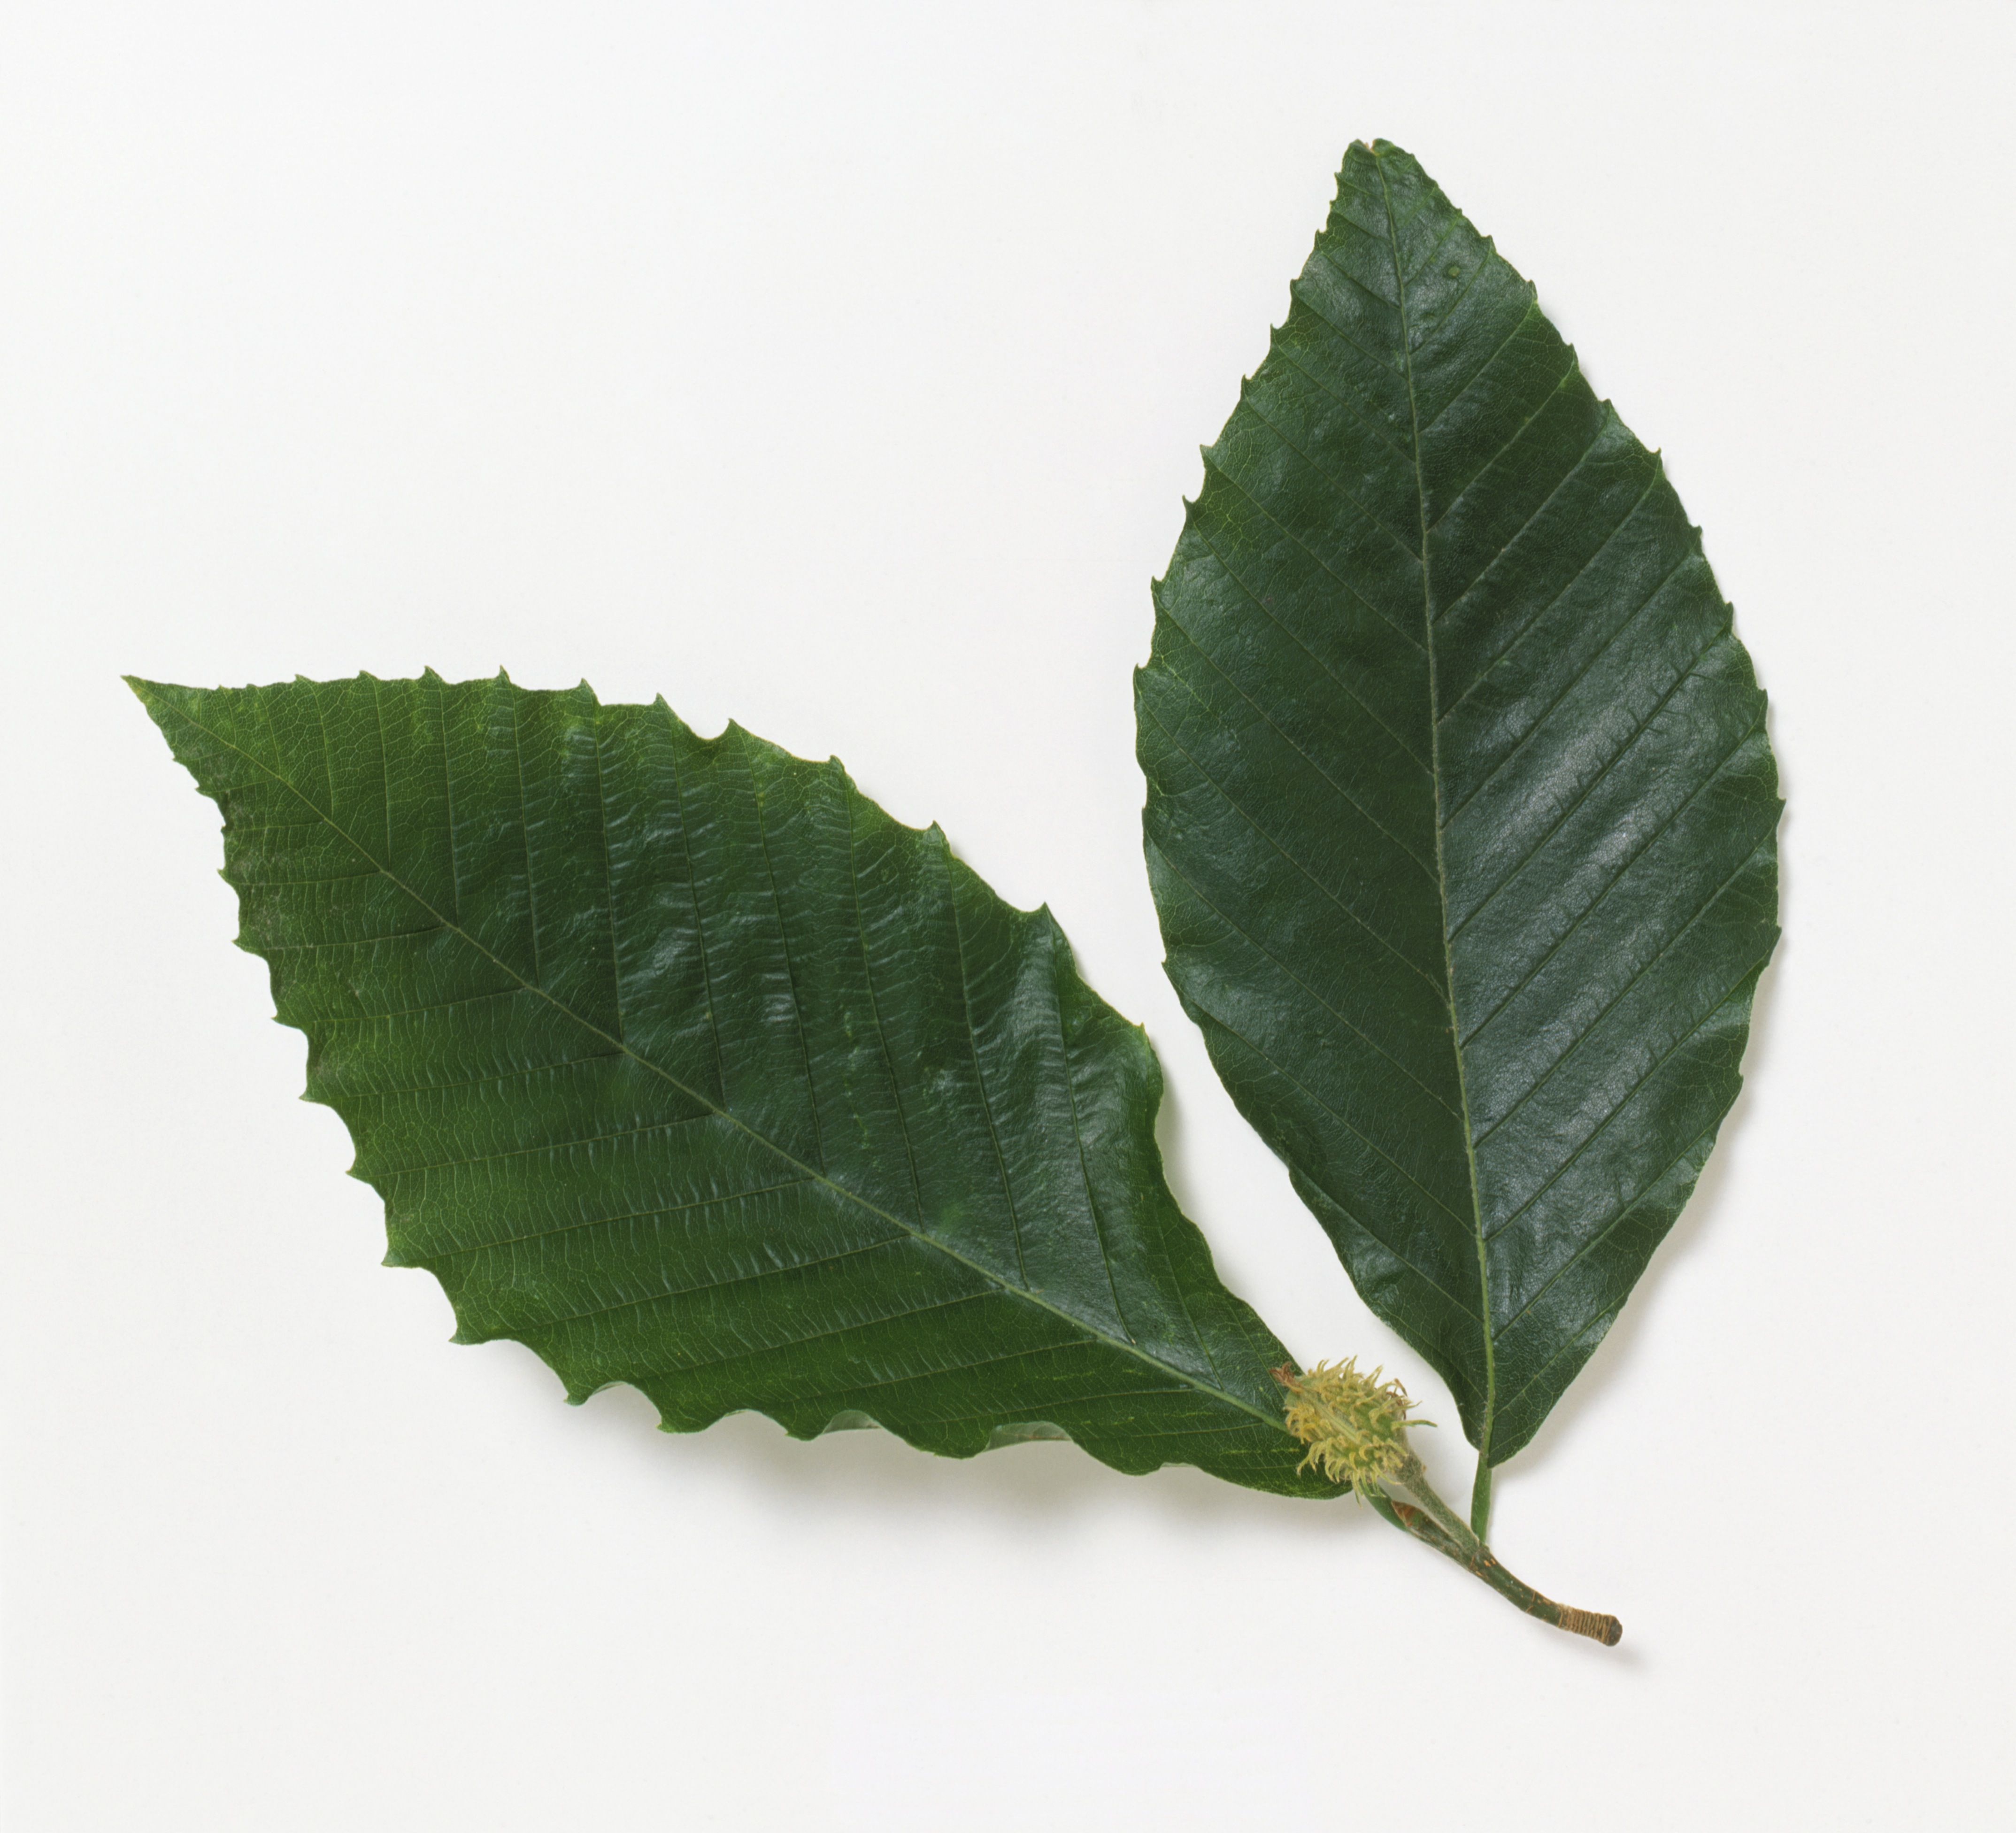 Close up of Fagus grandifolia (American beech) leaves with fruit against white background.